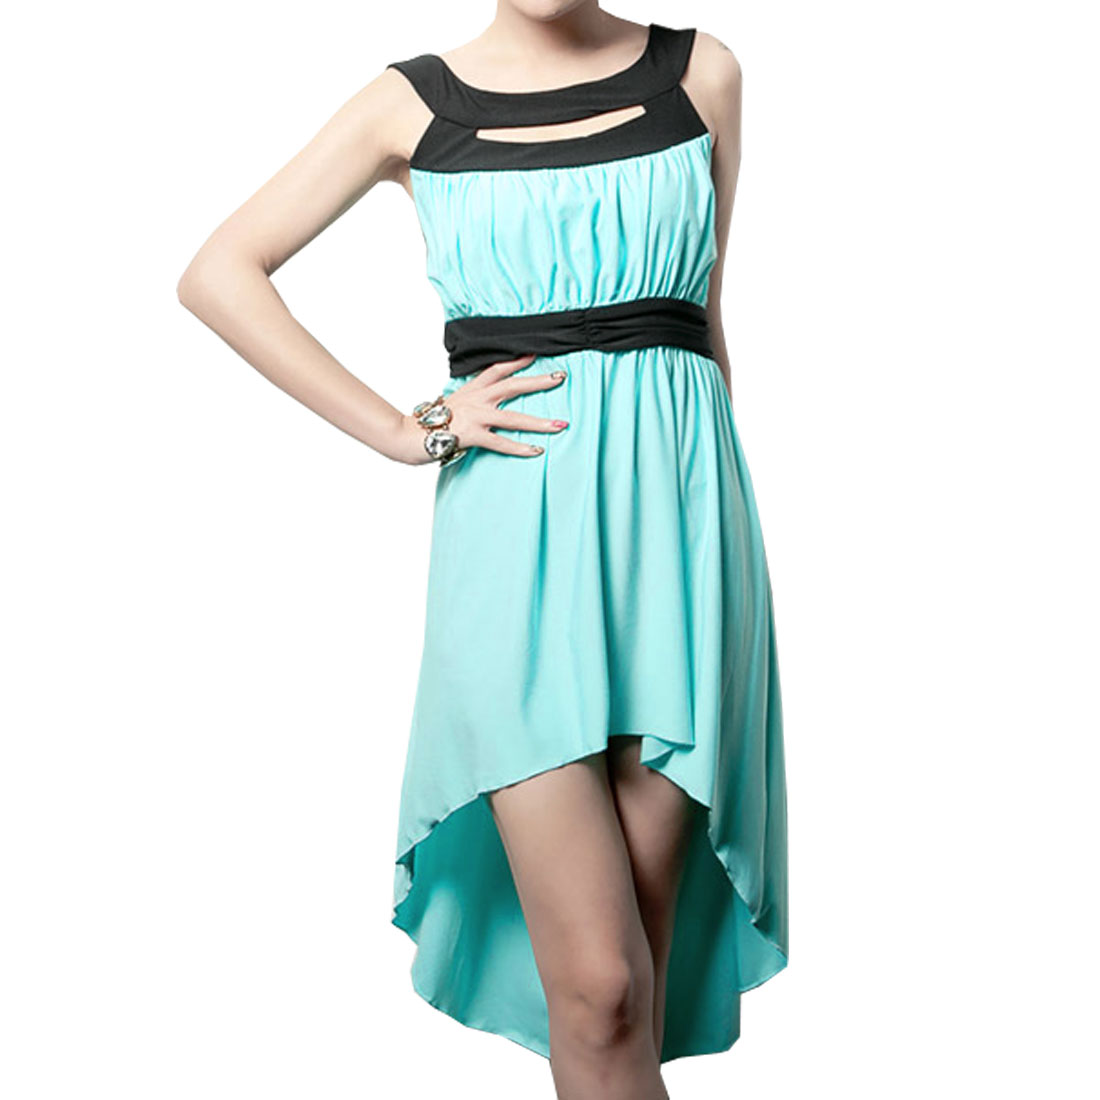 Woman Cyan Shoulders Sleeveless Hollow Out Dress XS